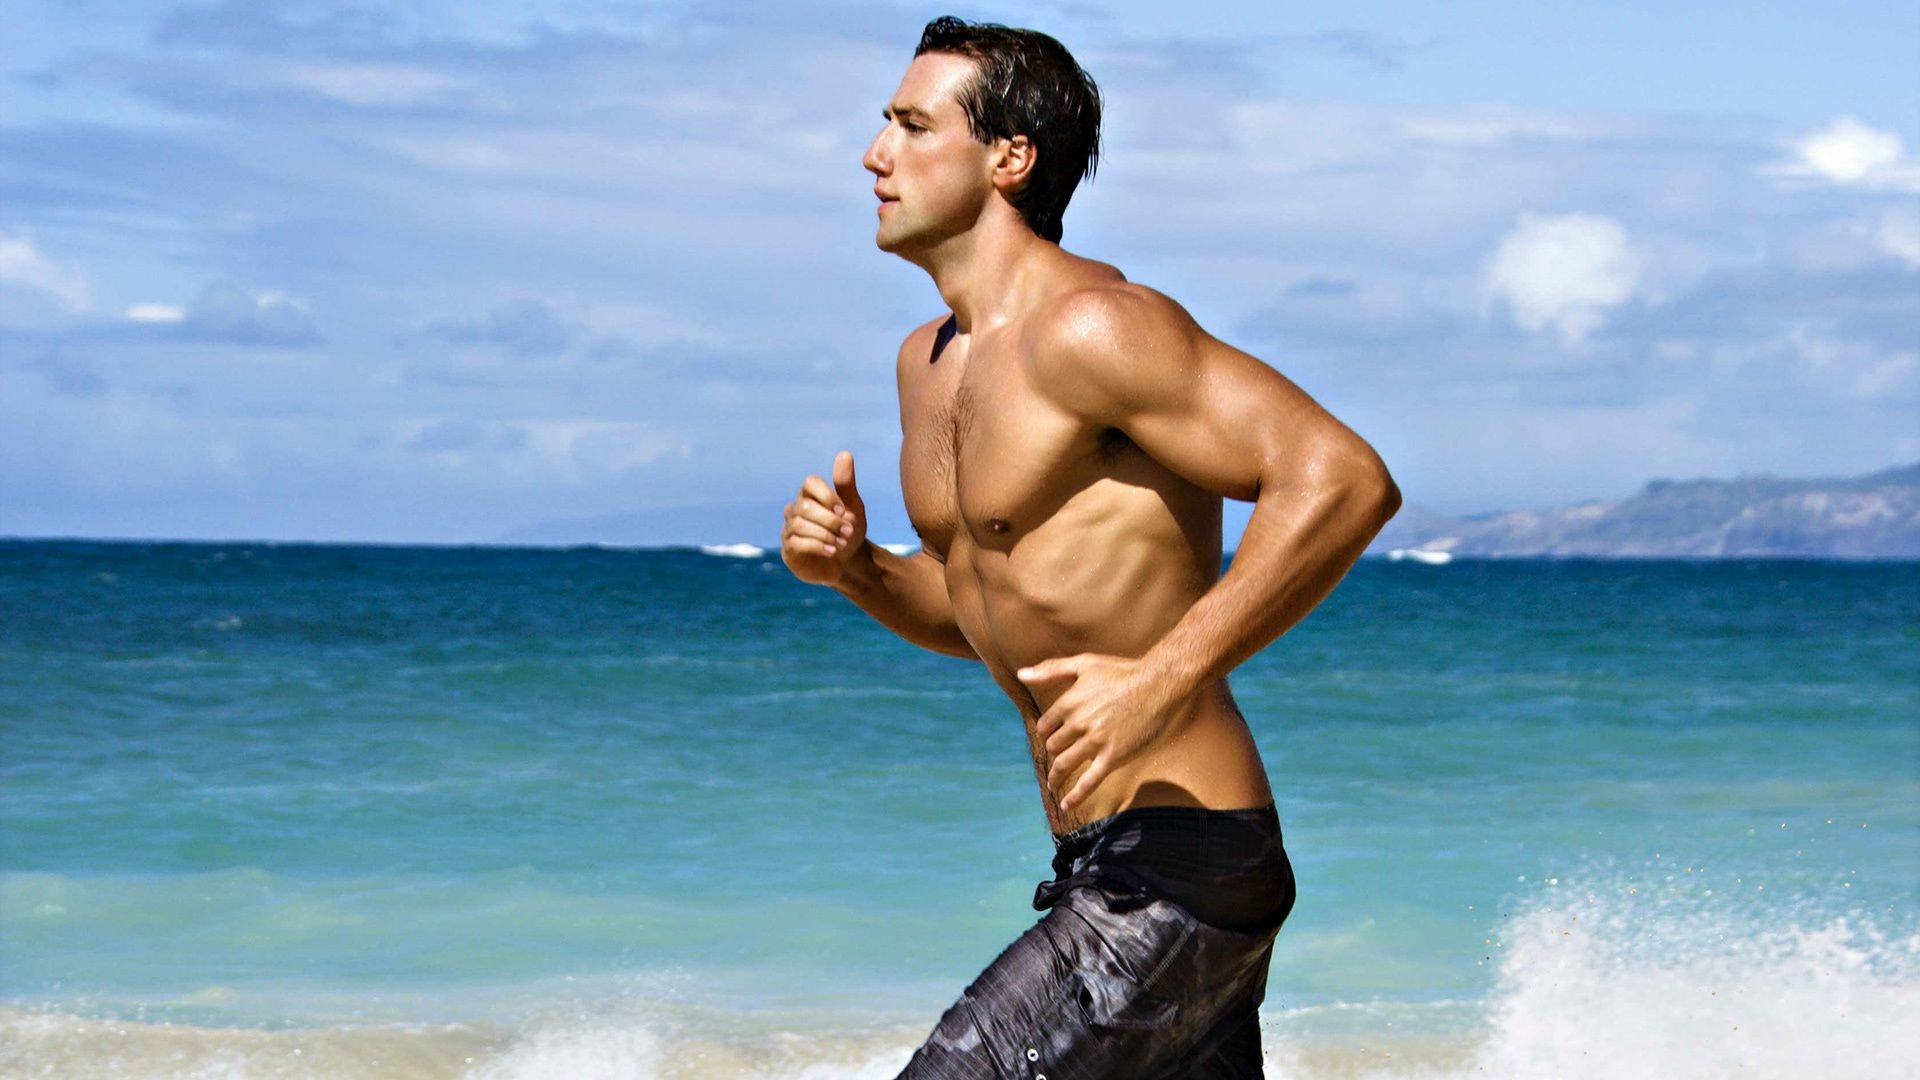 sportsman running on the beach. android wallpapers for free.